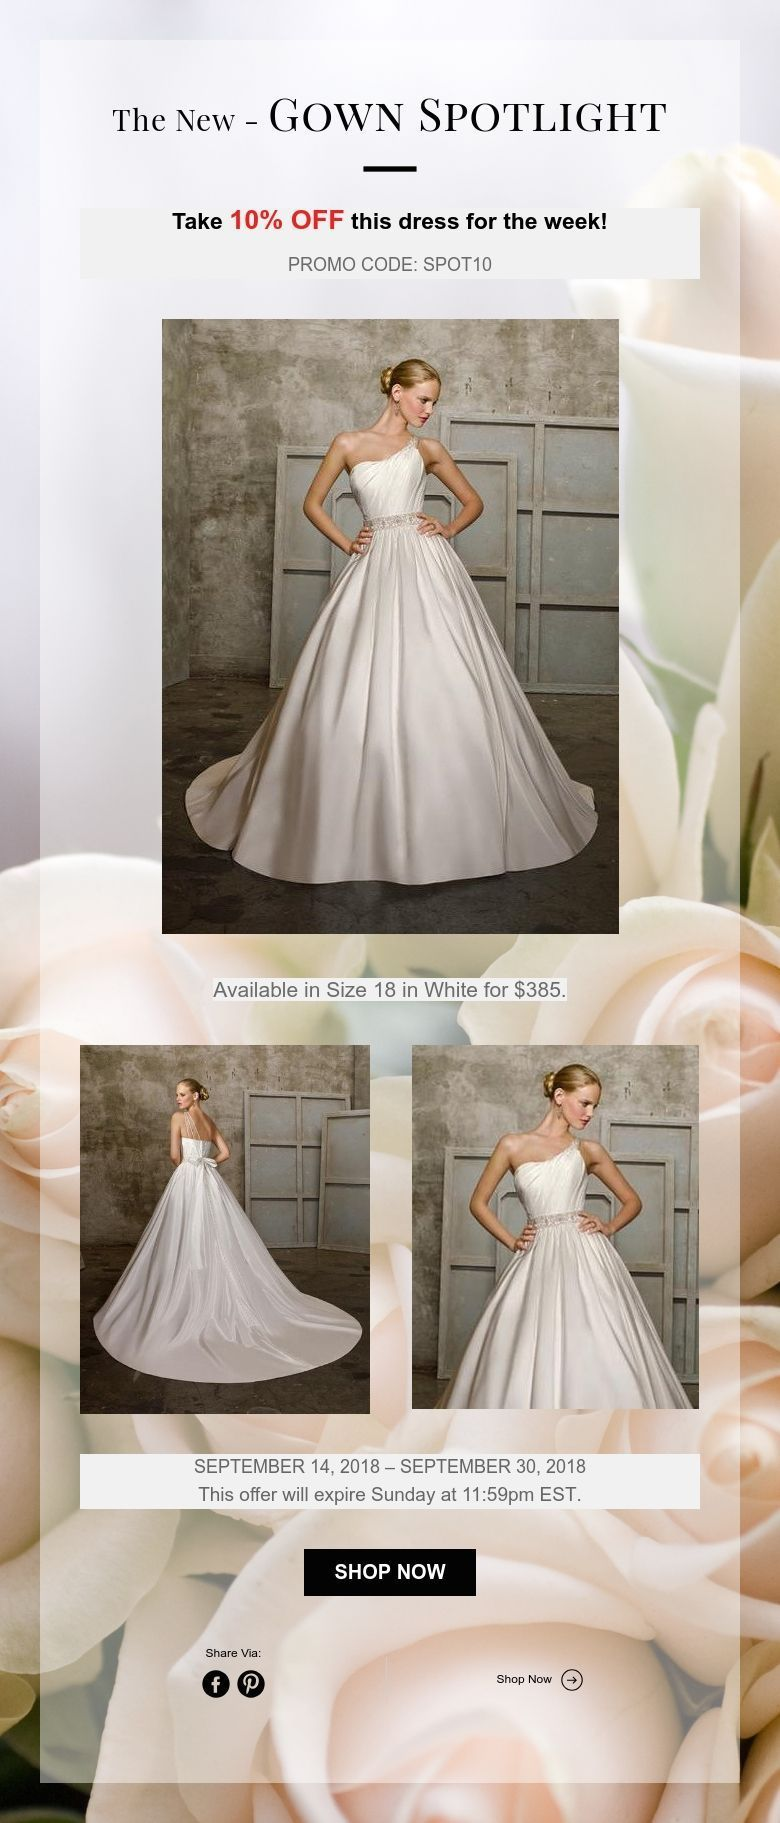 Ball gown wedding dresses new never worn or altered wedding